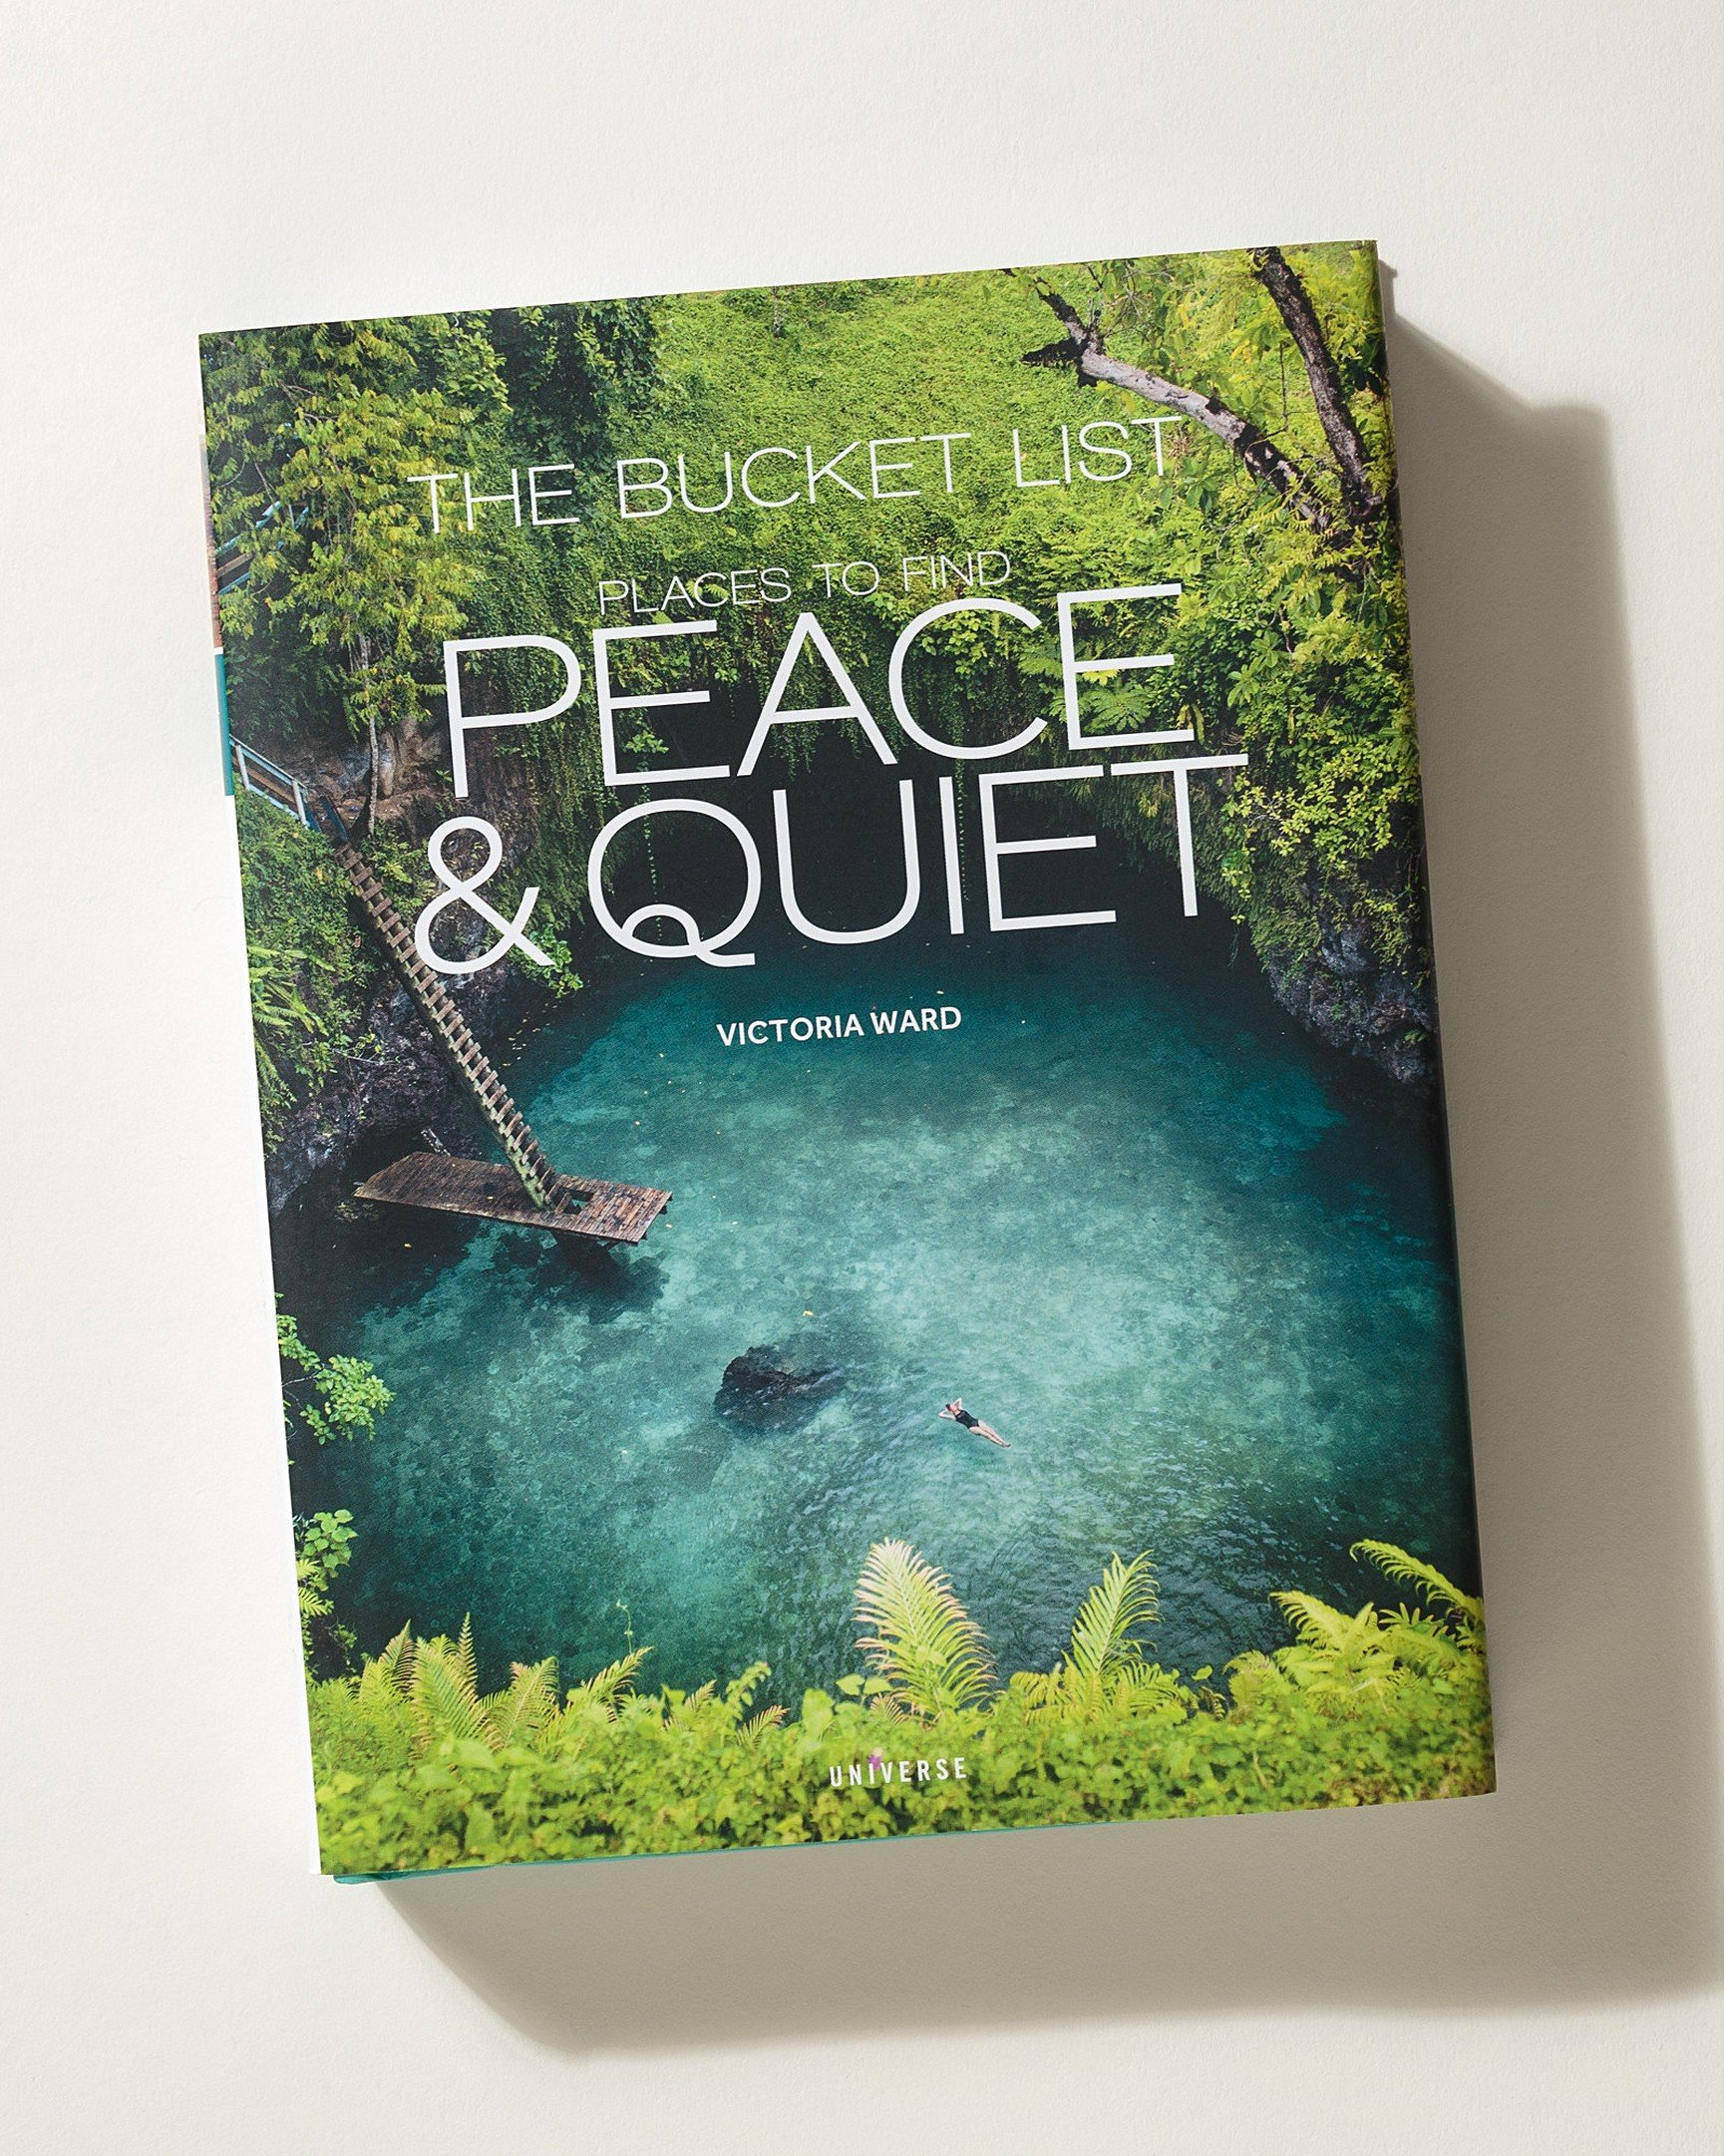 ad812973 The Bucket List: Places to Find Peace & Quiet Book